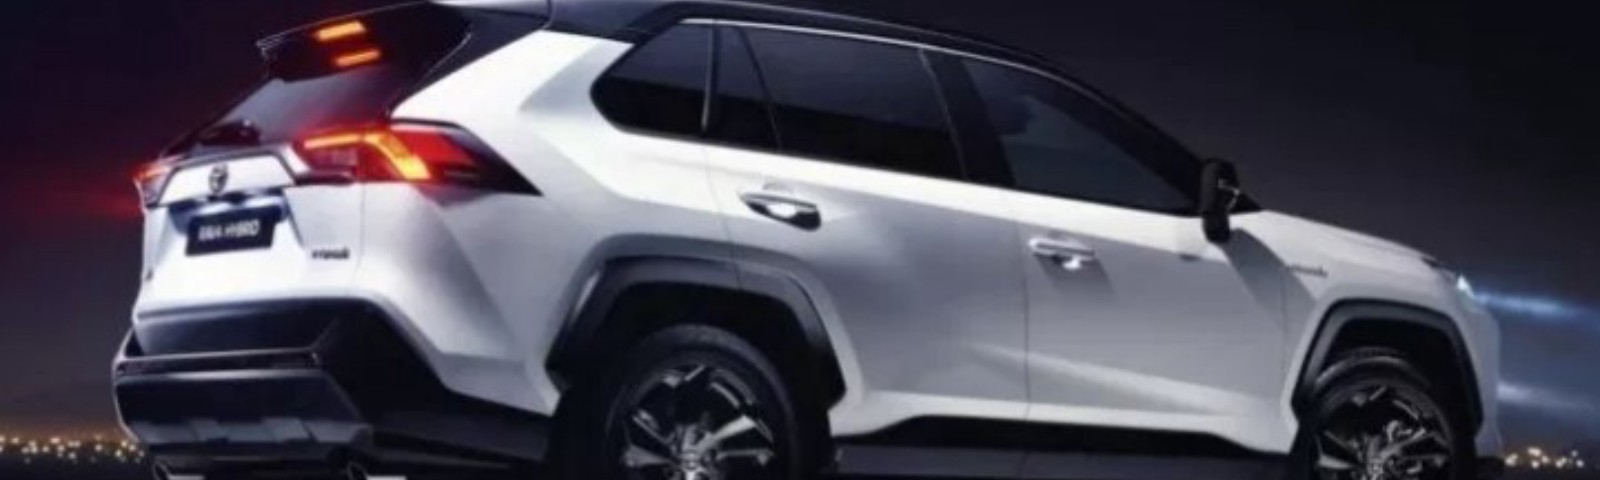 2020 Rav4 Hybrid Specs Price And Release Date The New Subaru